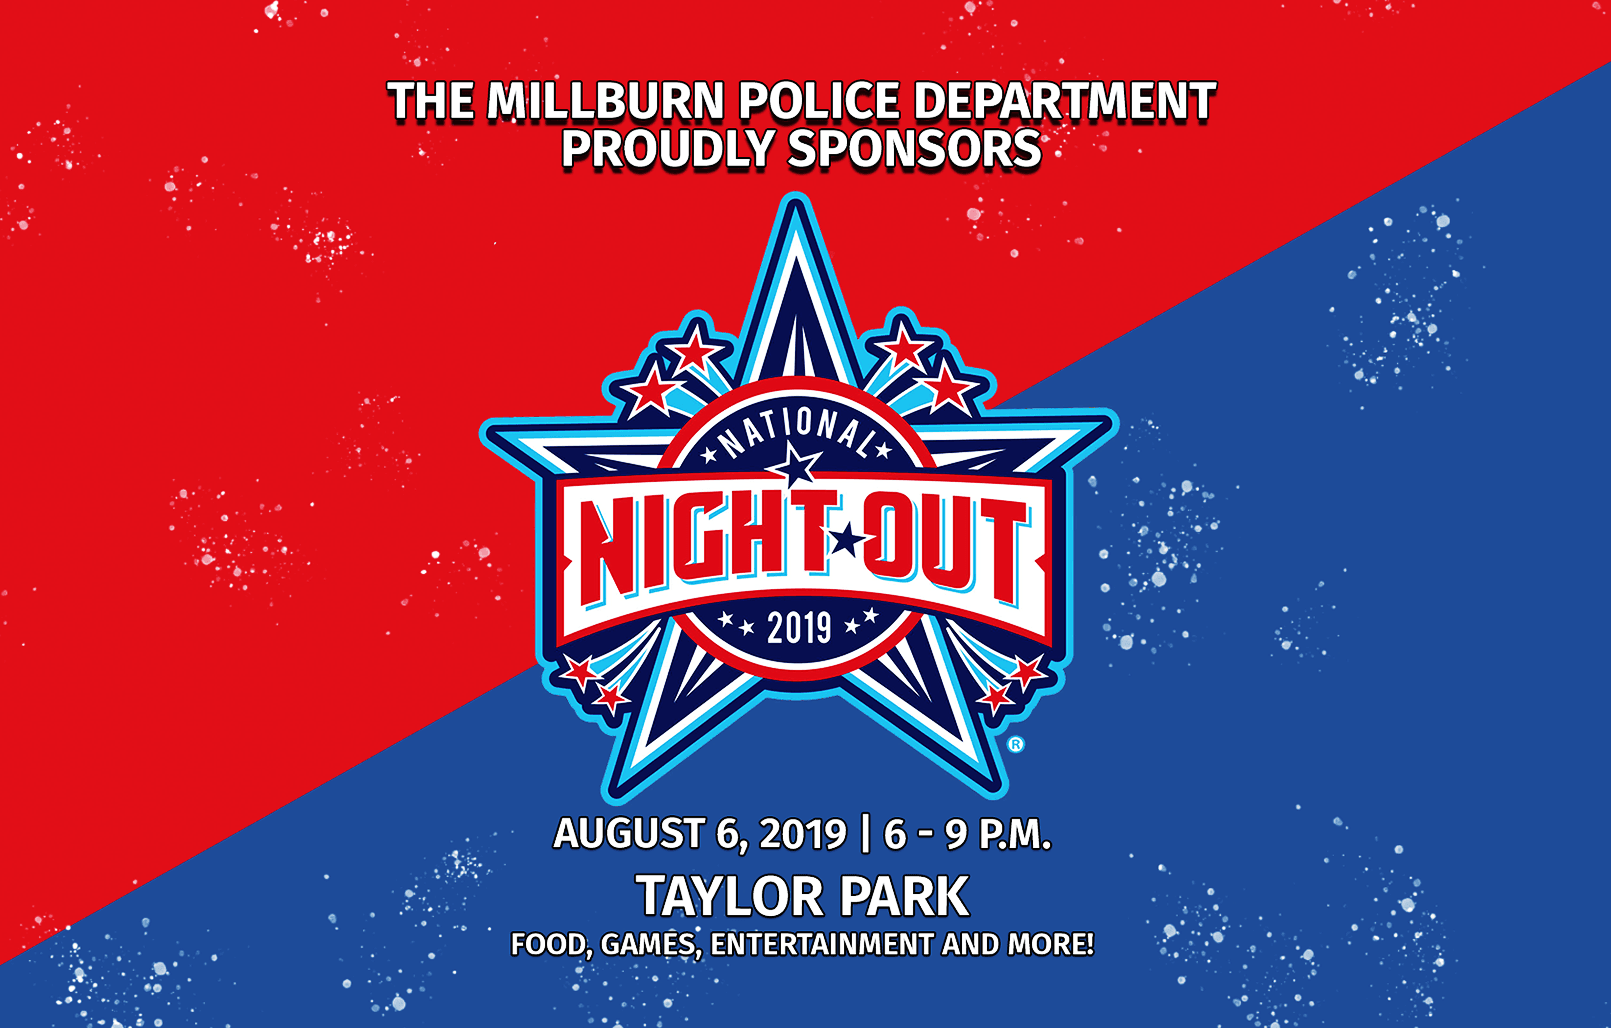 National Night Out logo with date and time information on event